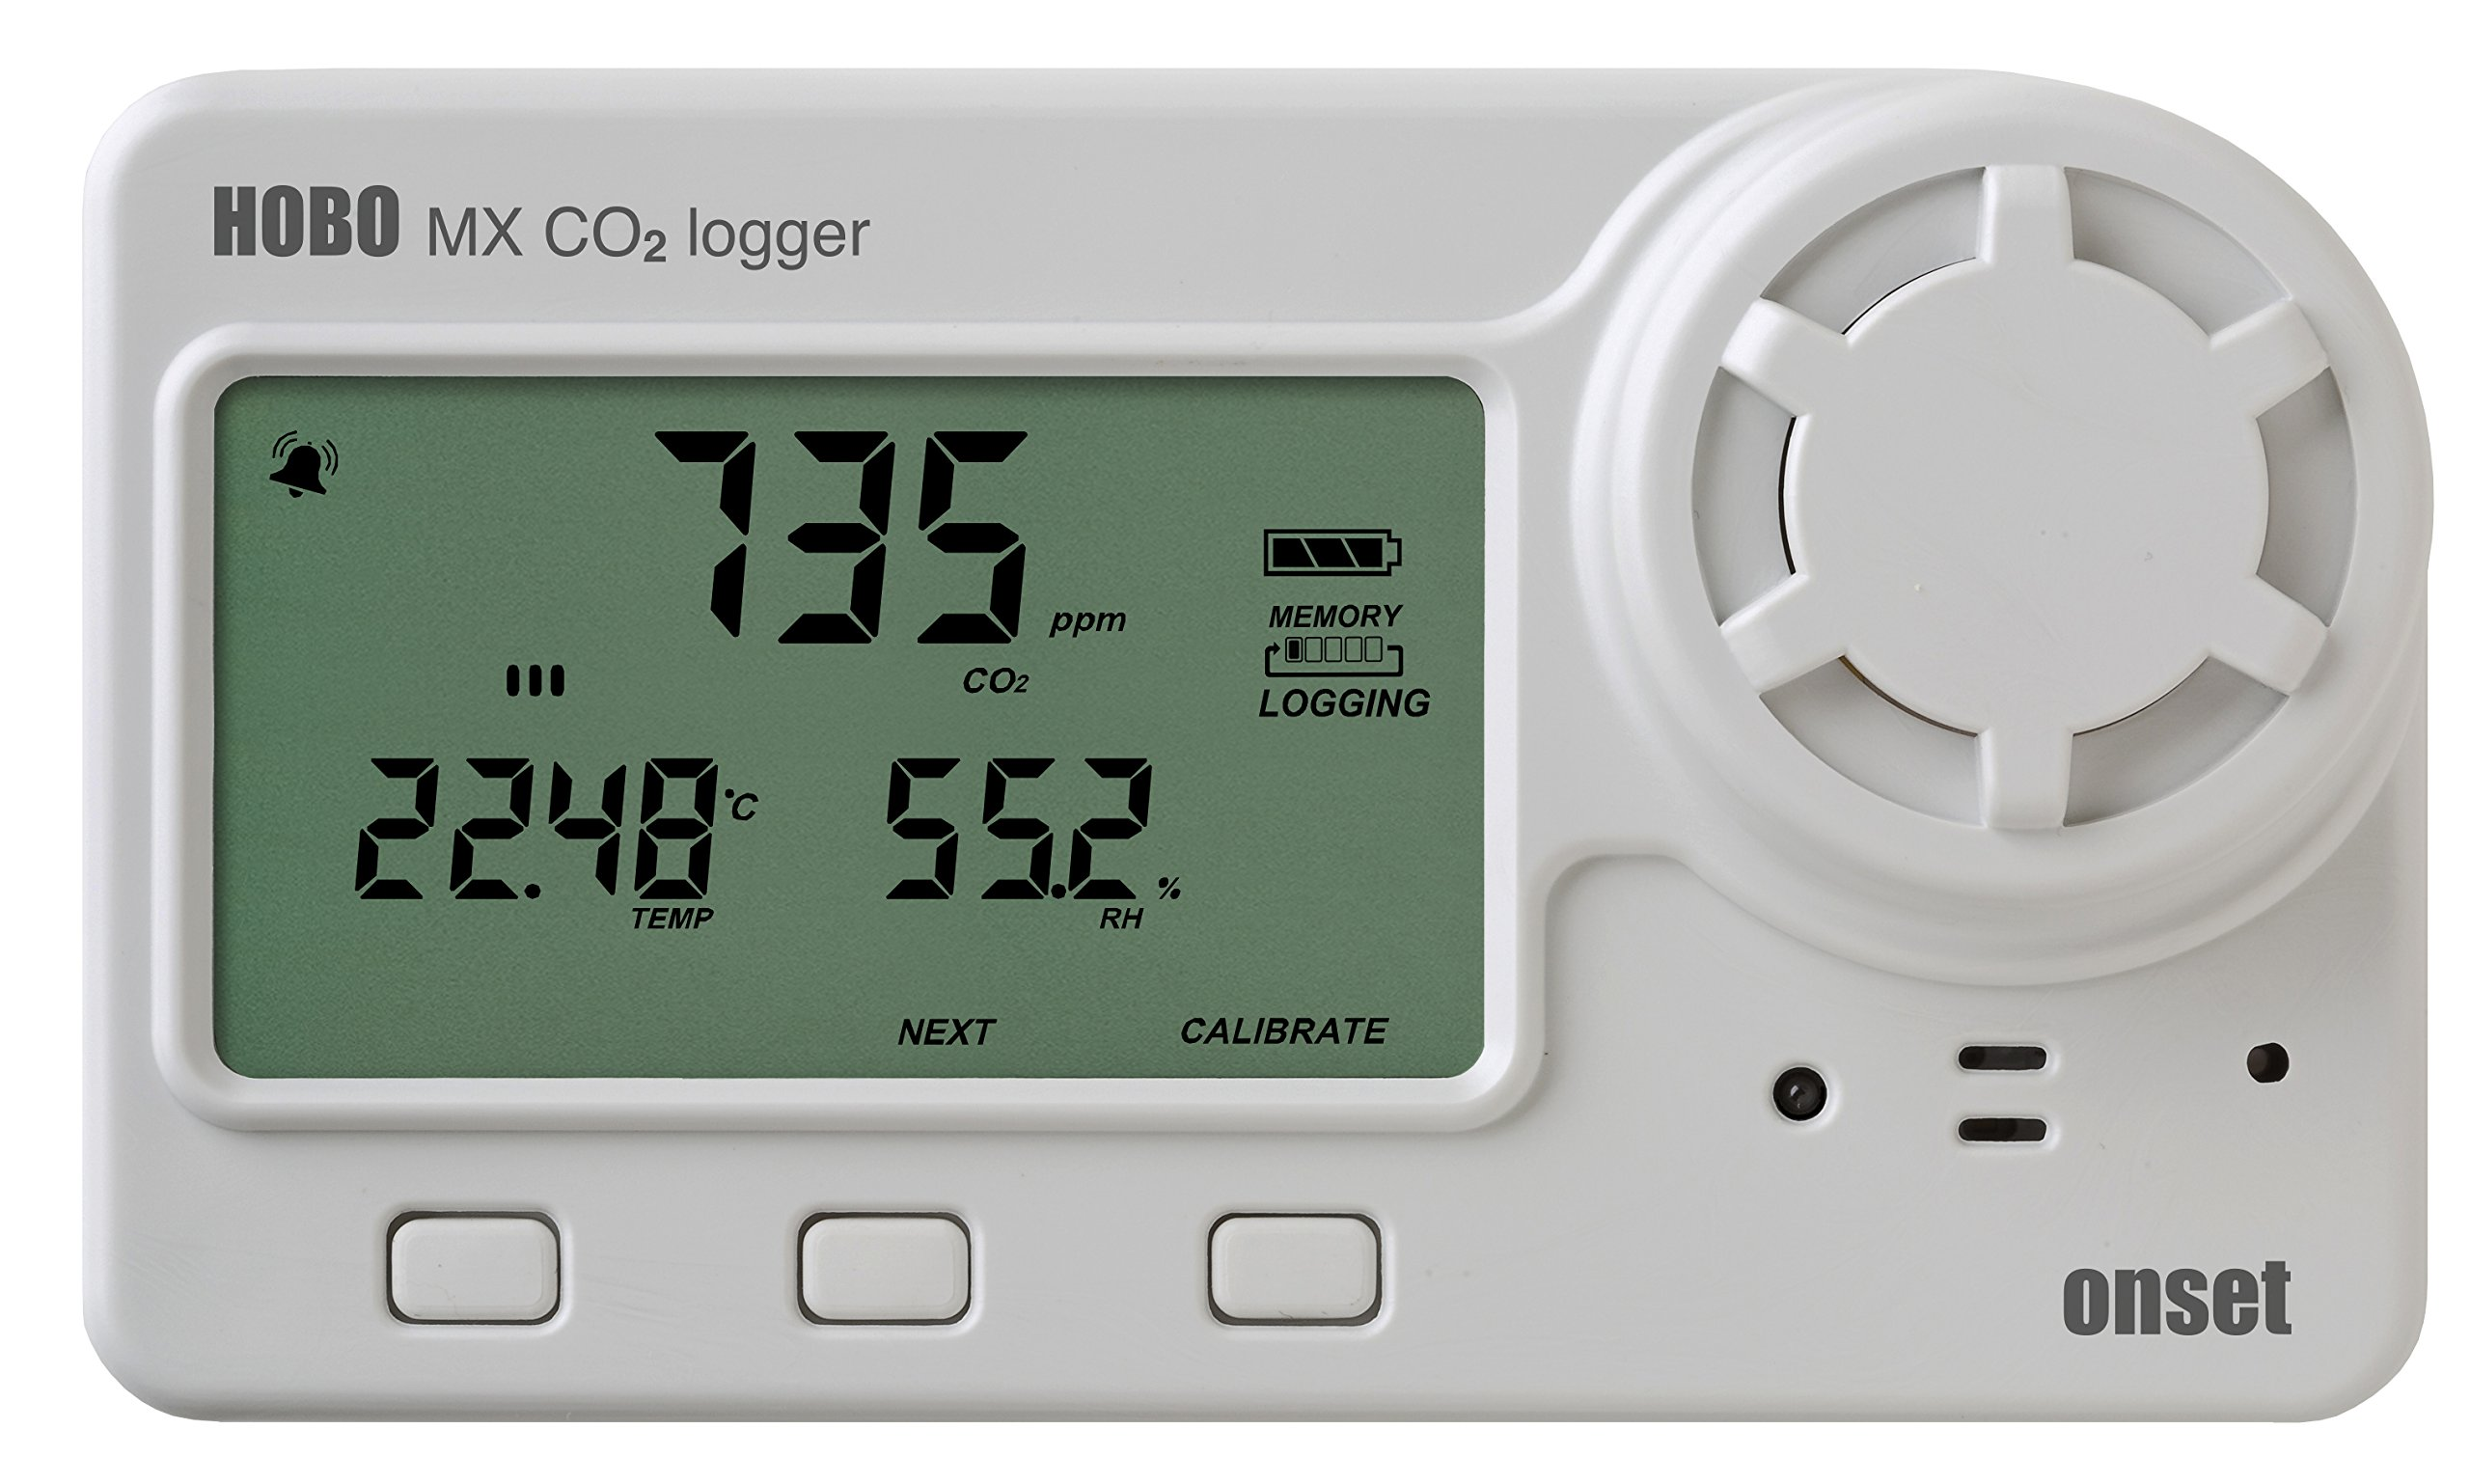 MX1102 HOBO Indoor Air Quality Logger. Monitor, Alarm, and Graph Carbon Dioxide/Temp/Humidity in home, office, museum, school, hospital, lab. Download data wirelessly within 100 ft.